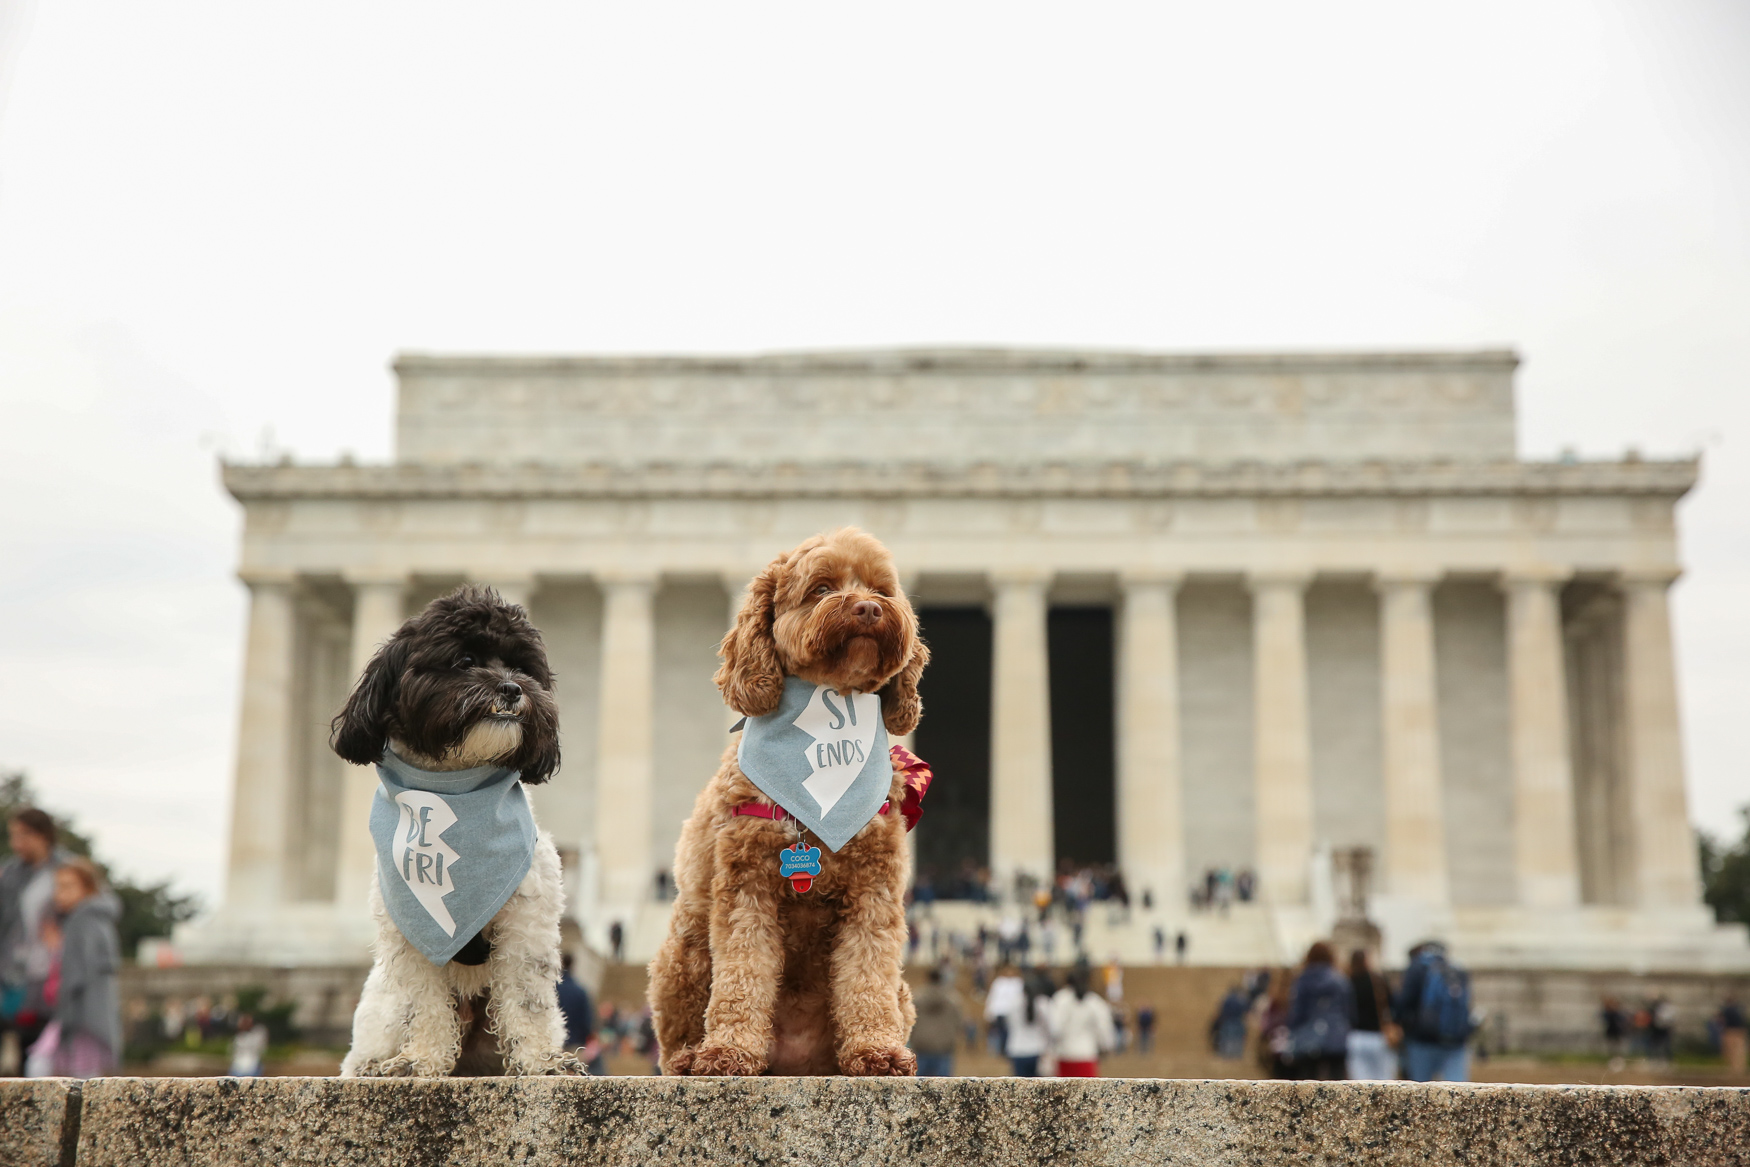 Every week we feature a reader's pet in our DC RUFFined photo gallery and we're looking for more dogs! Whether your dog is young, old, purebred, a mutt or anything in between, we would love to include them. To participate, you must be able to meet our photographer in the D.C. area and your pup must be trained enough to sit and not bite (other than the occasional puppy nibble!). If you want to coordinate a photo shoot, which typically lasts 30-45 minutes,{ } email our photographer at aandrade@dcrefined.com with your location, availability and some information about your dog! (Amanda Andrade-Rhoades/DC Refined)